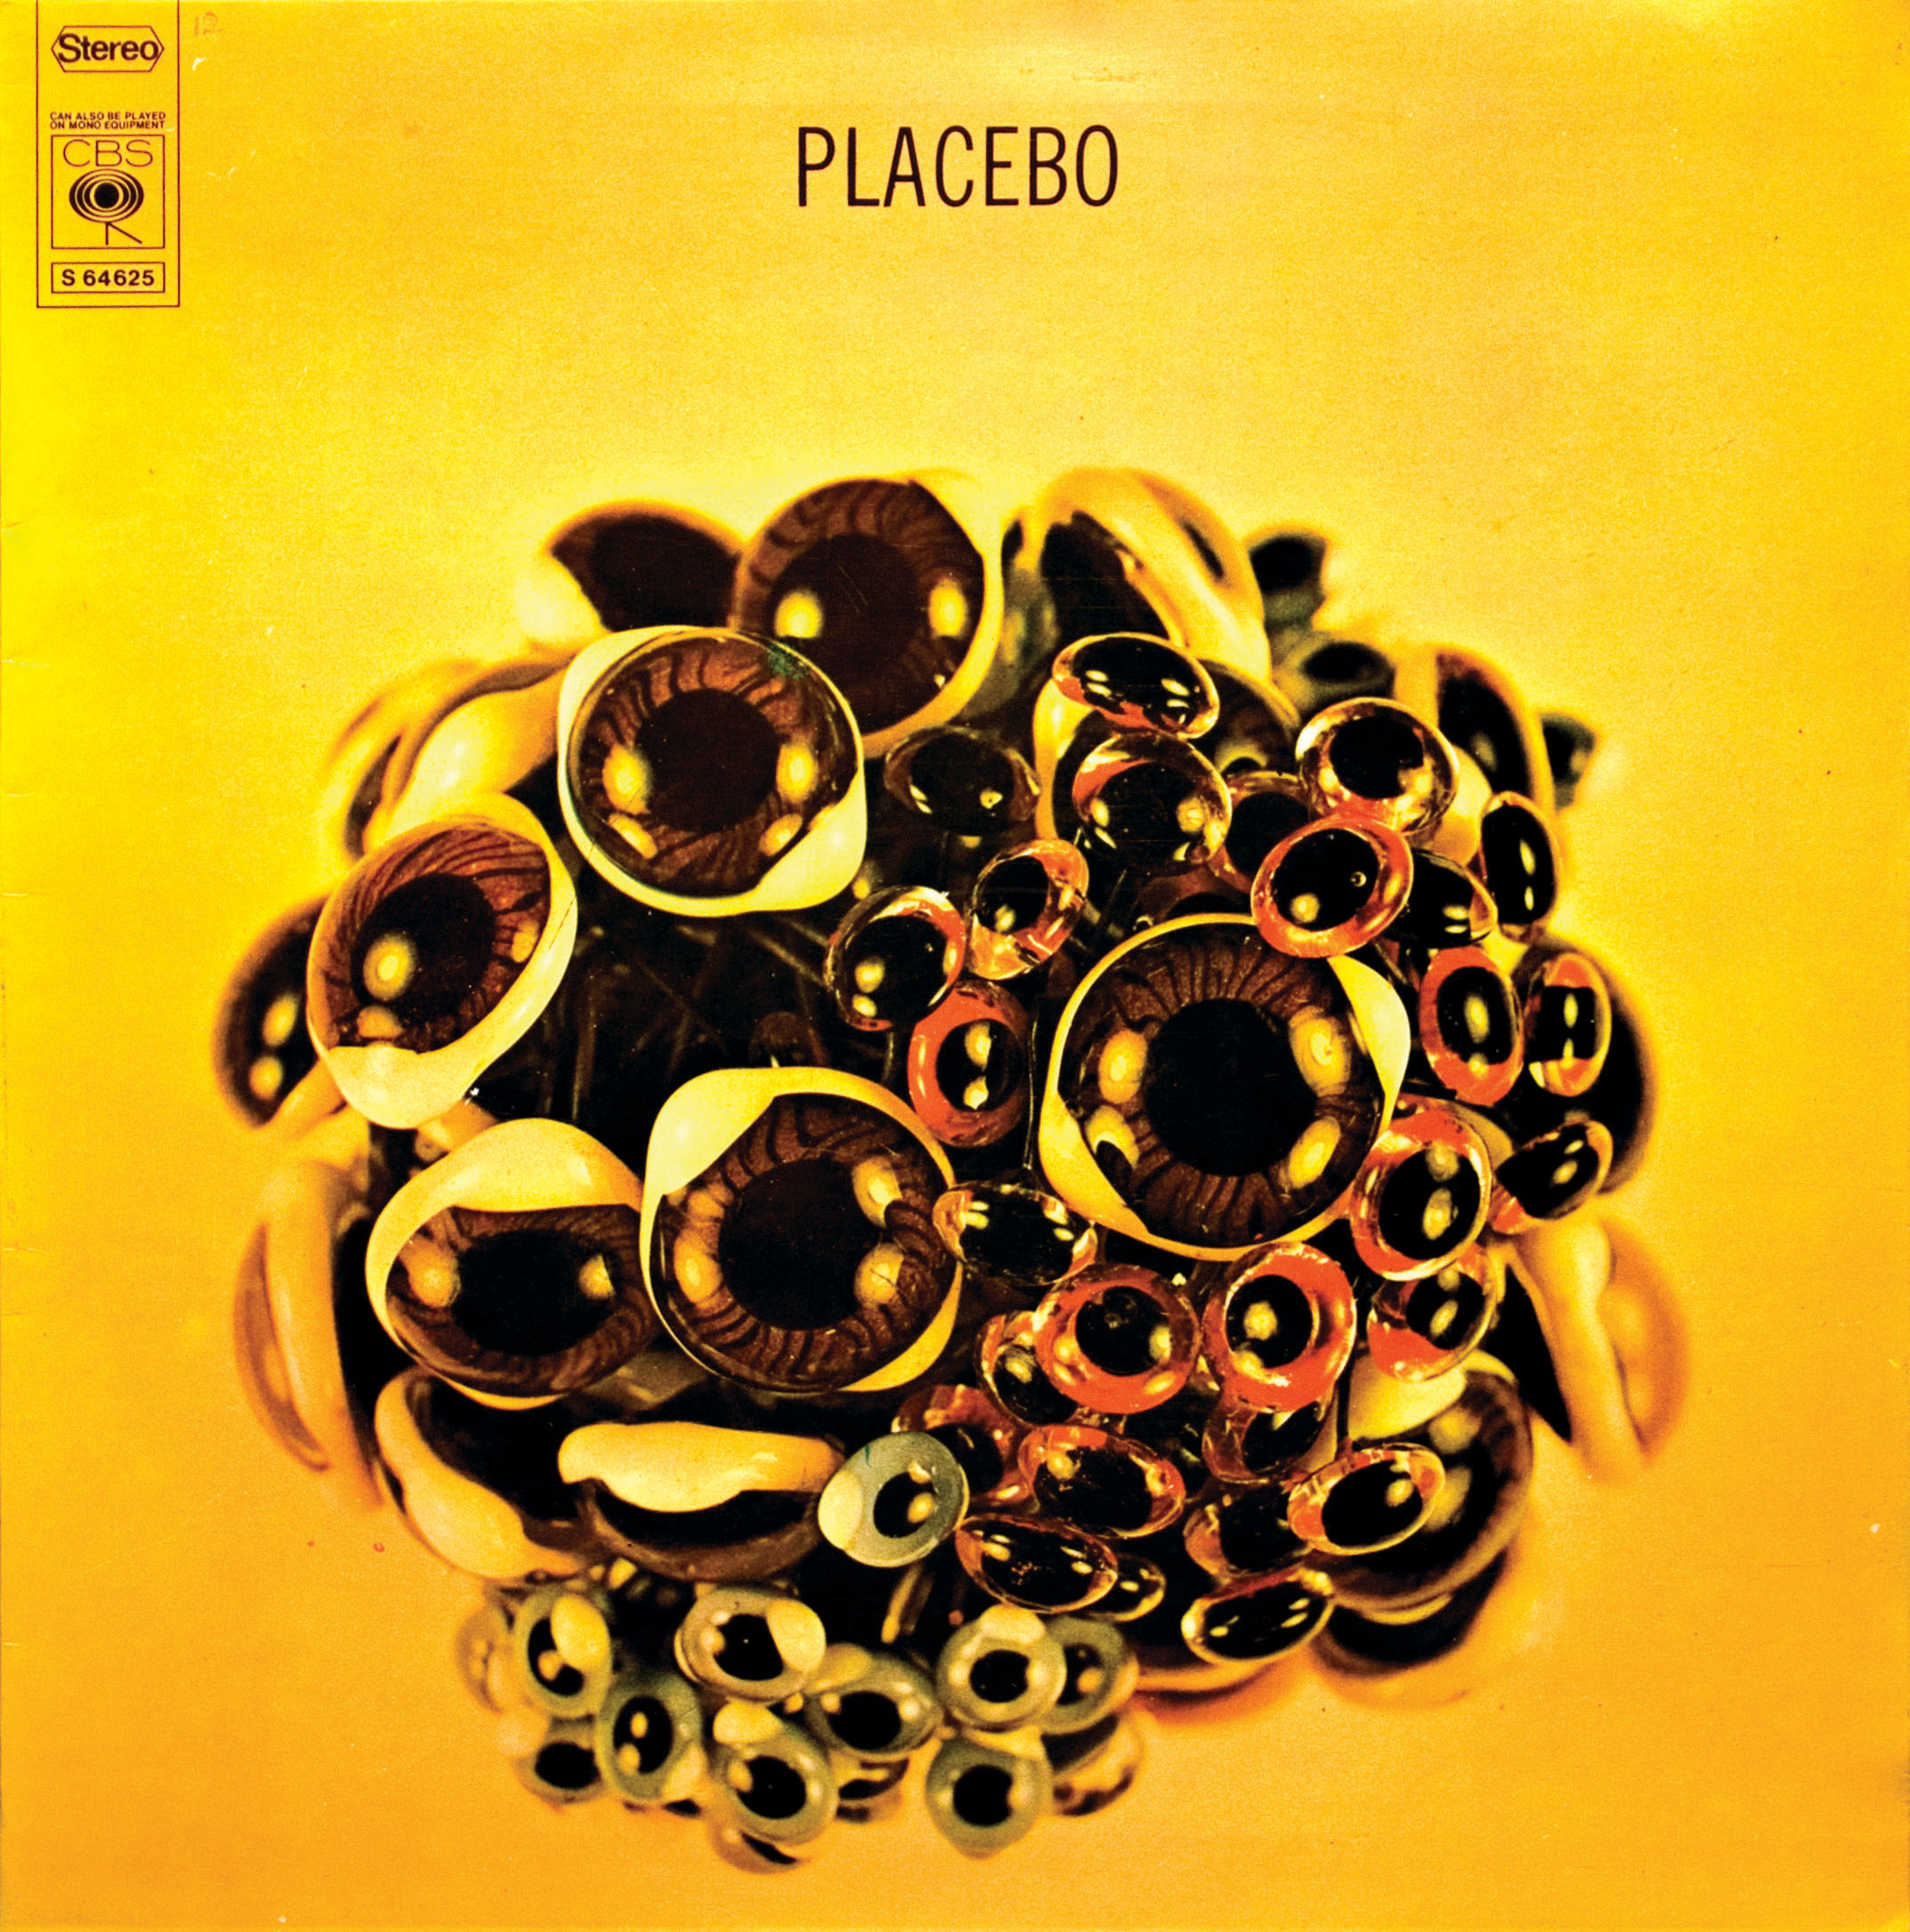 Grooves & Samples #11: Placebo – Humpty Dumpty (1971)